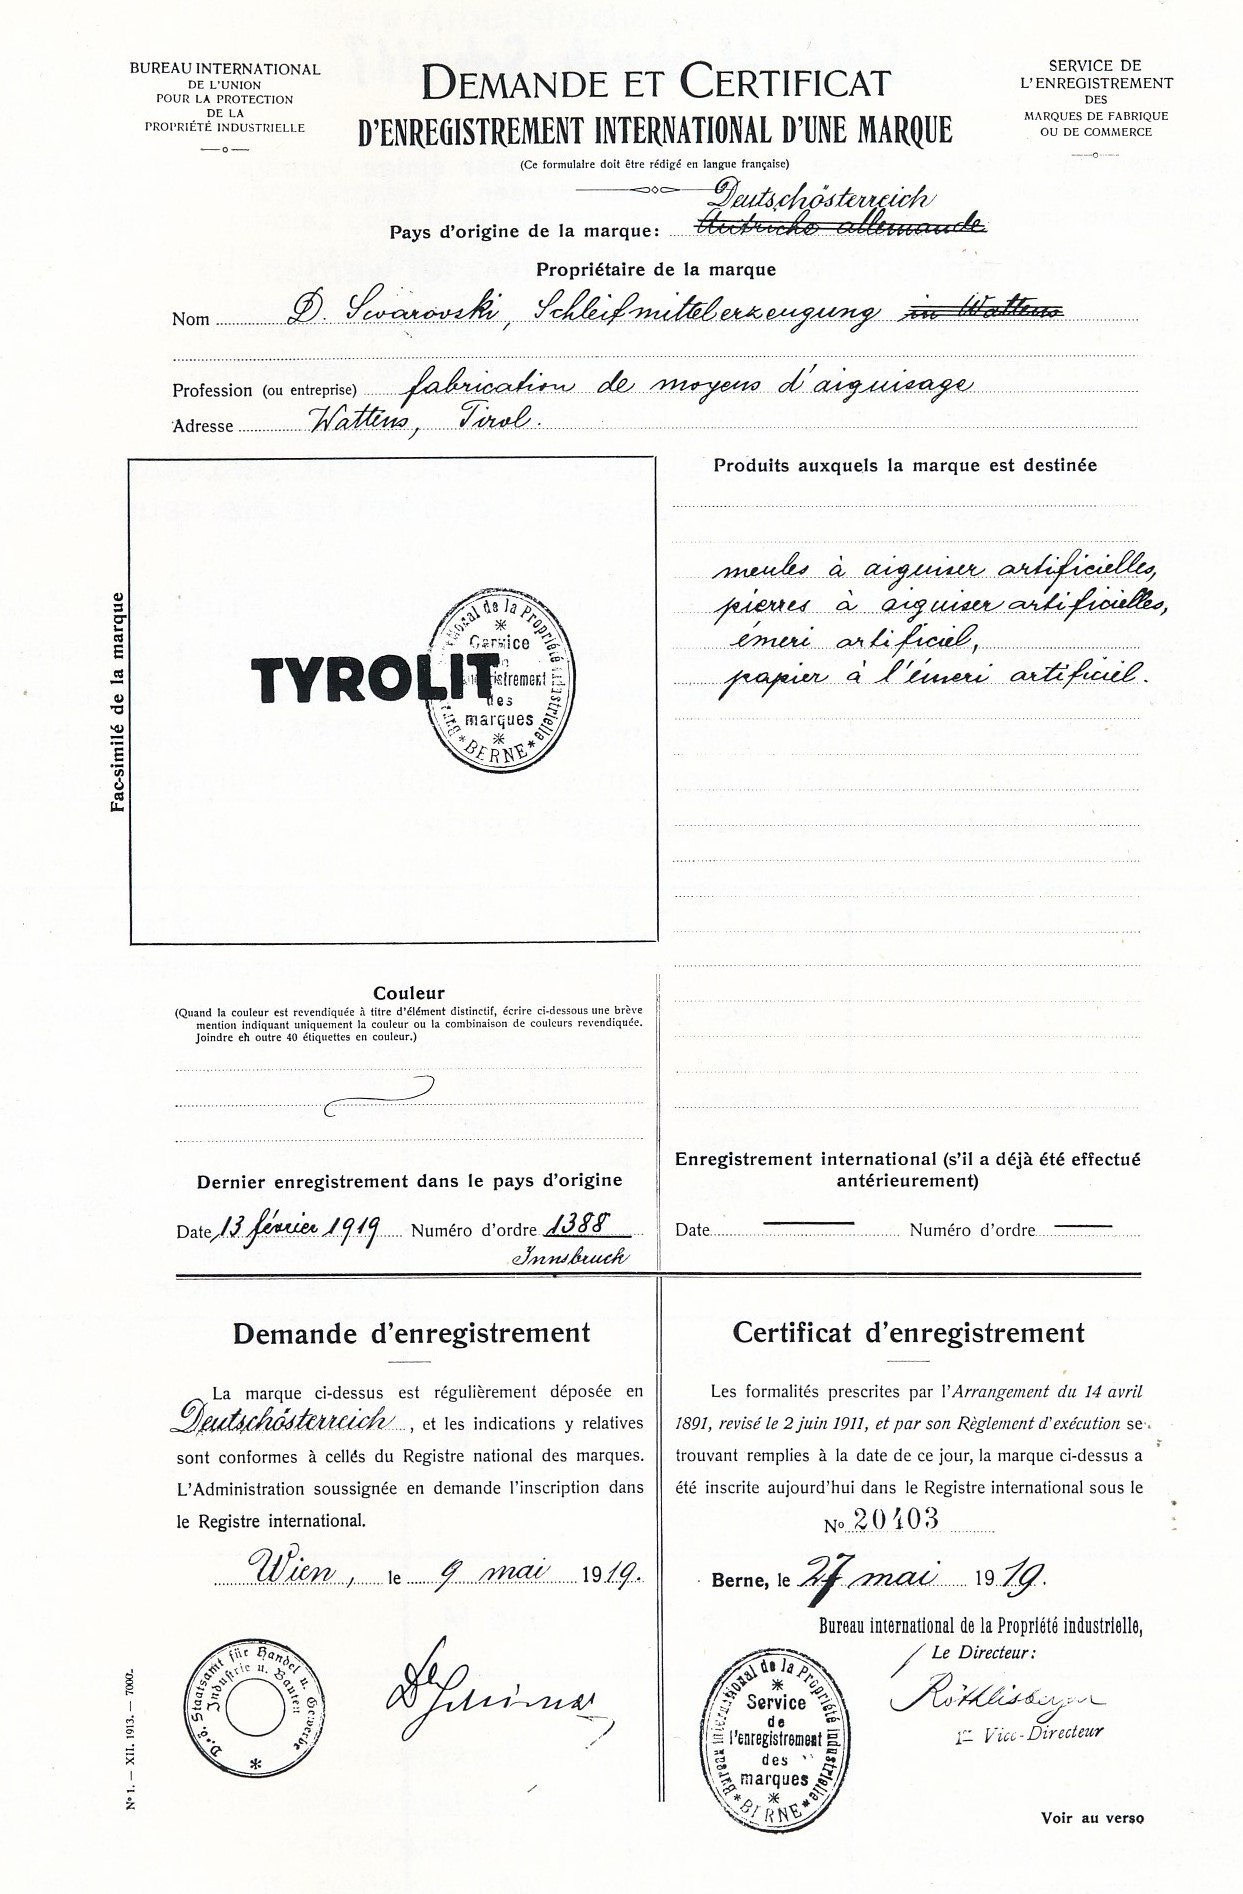 TYROLIT - Inovations - Timeline - The founding of TYROLIT